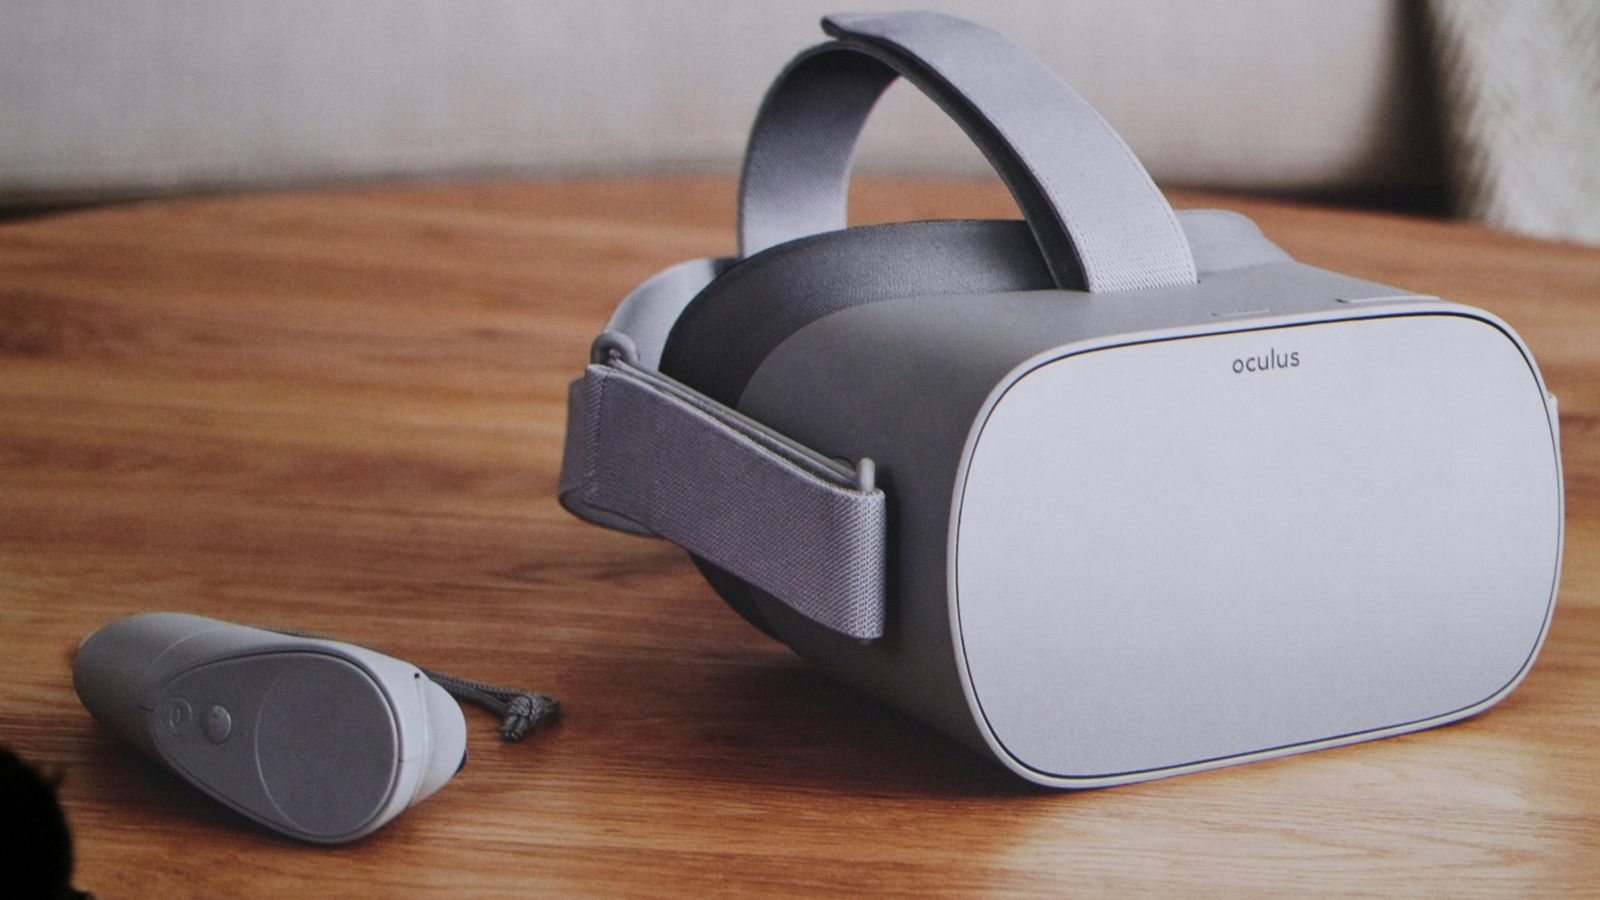 The Oculus Go $199 VR Headset Won't Need a Phone – Virtual ...